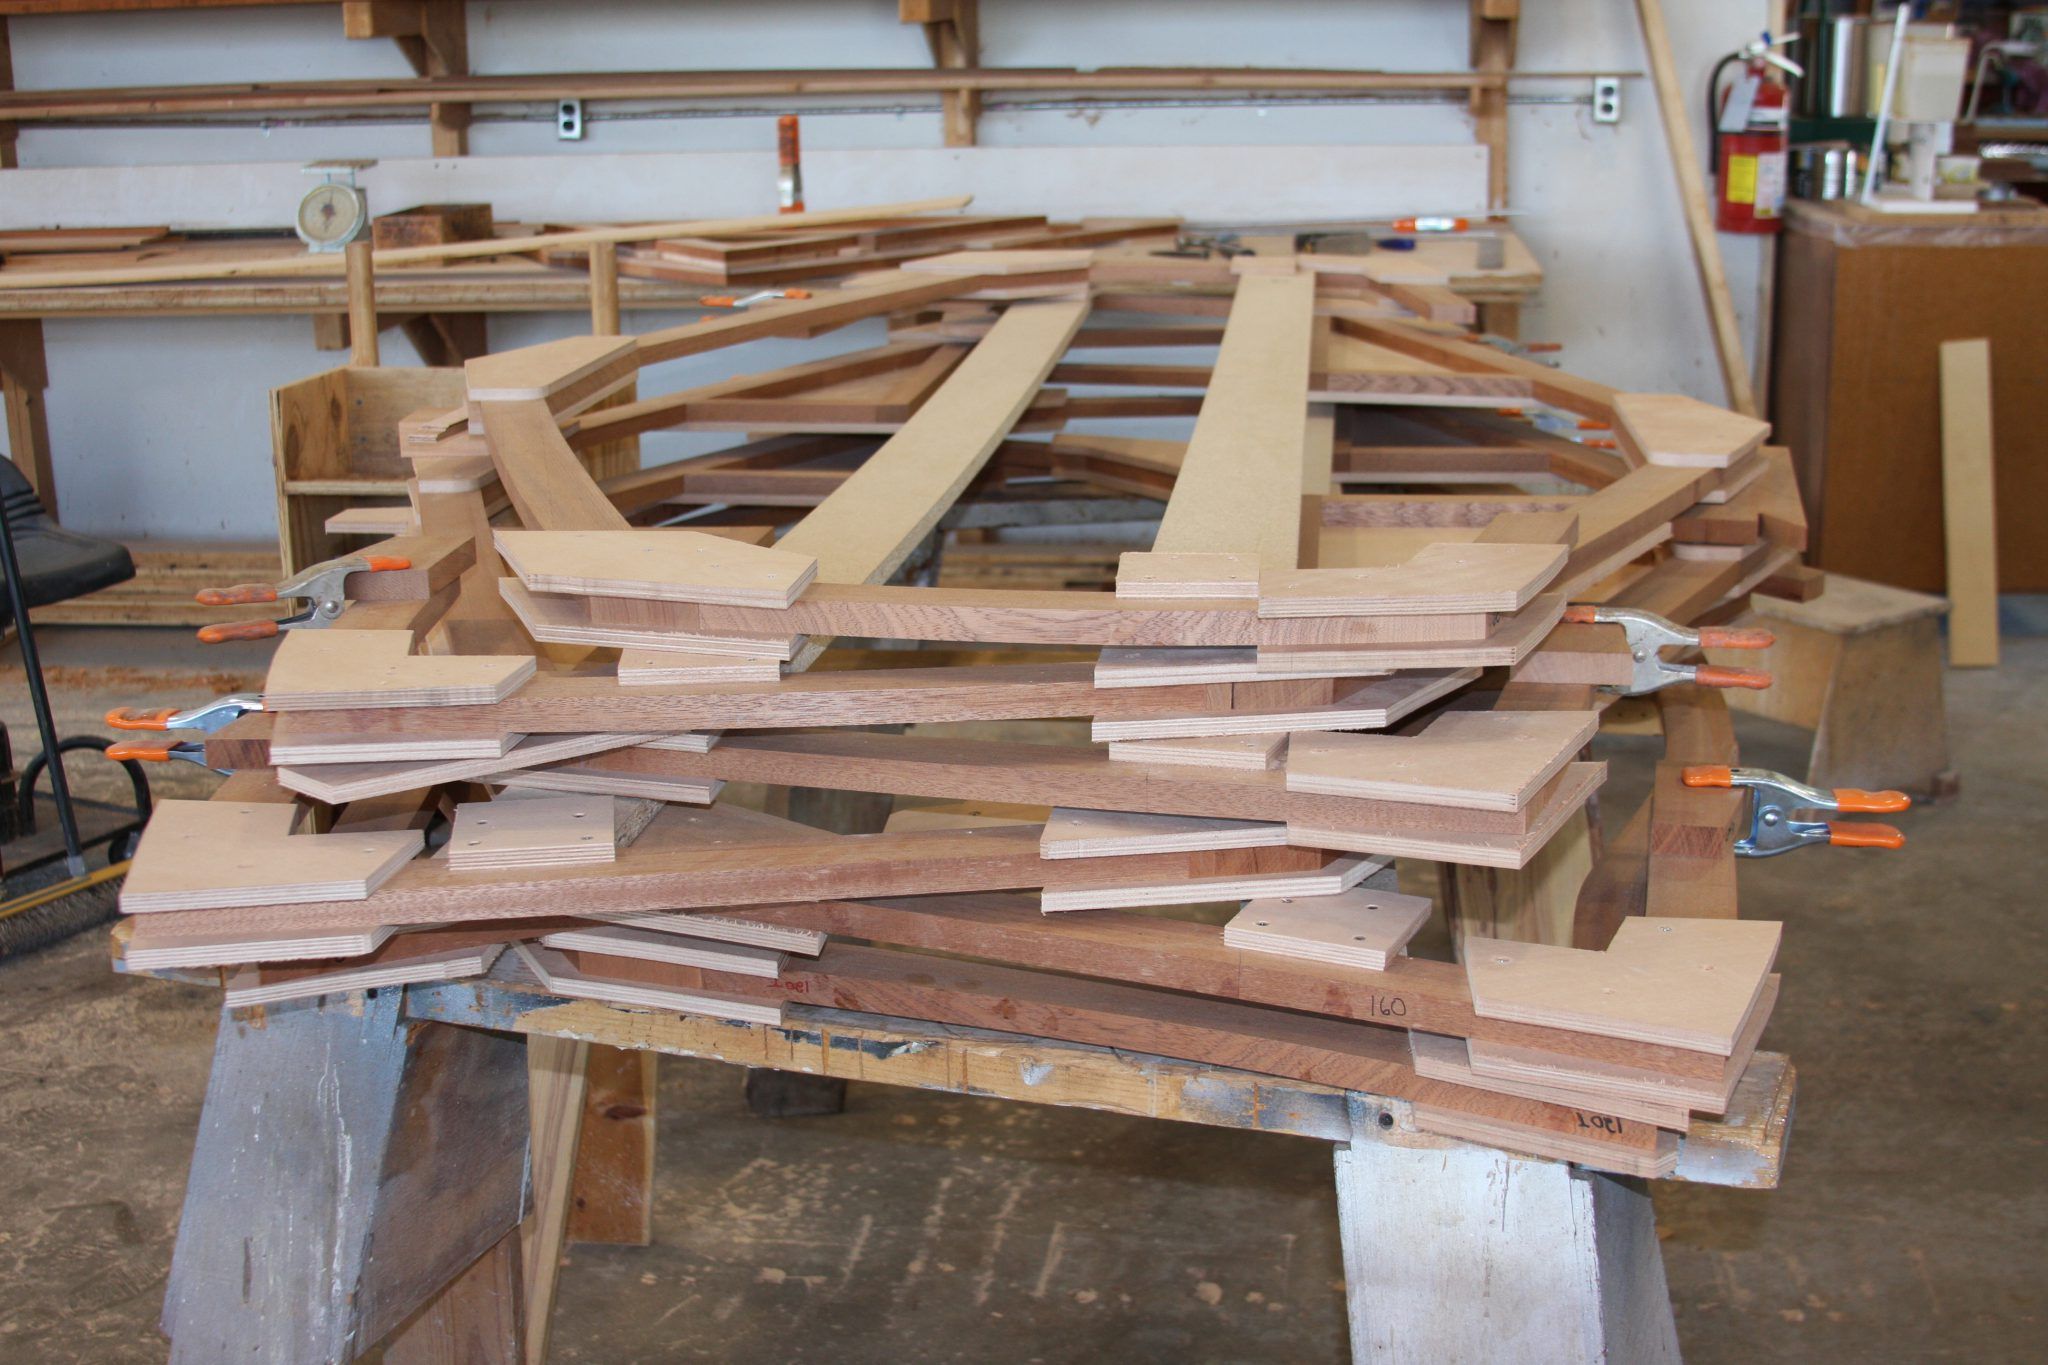 assembled frames ready for hull construction